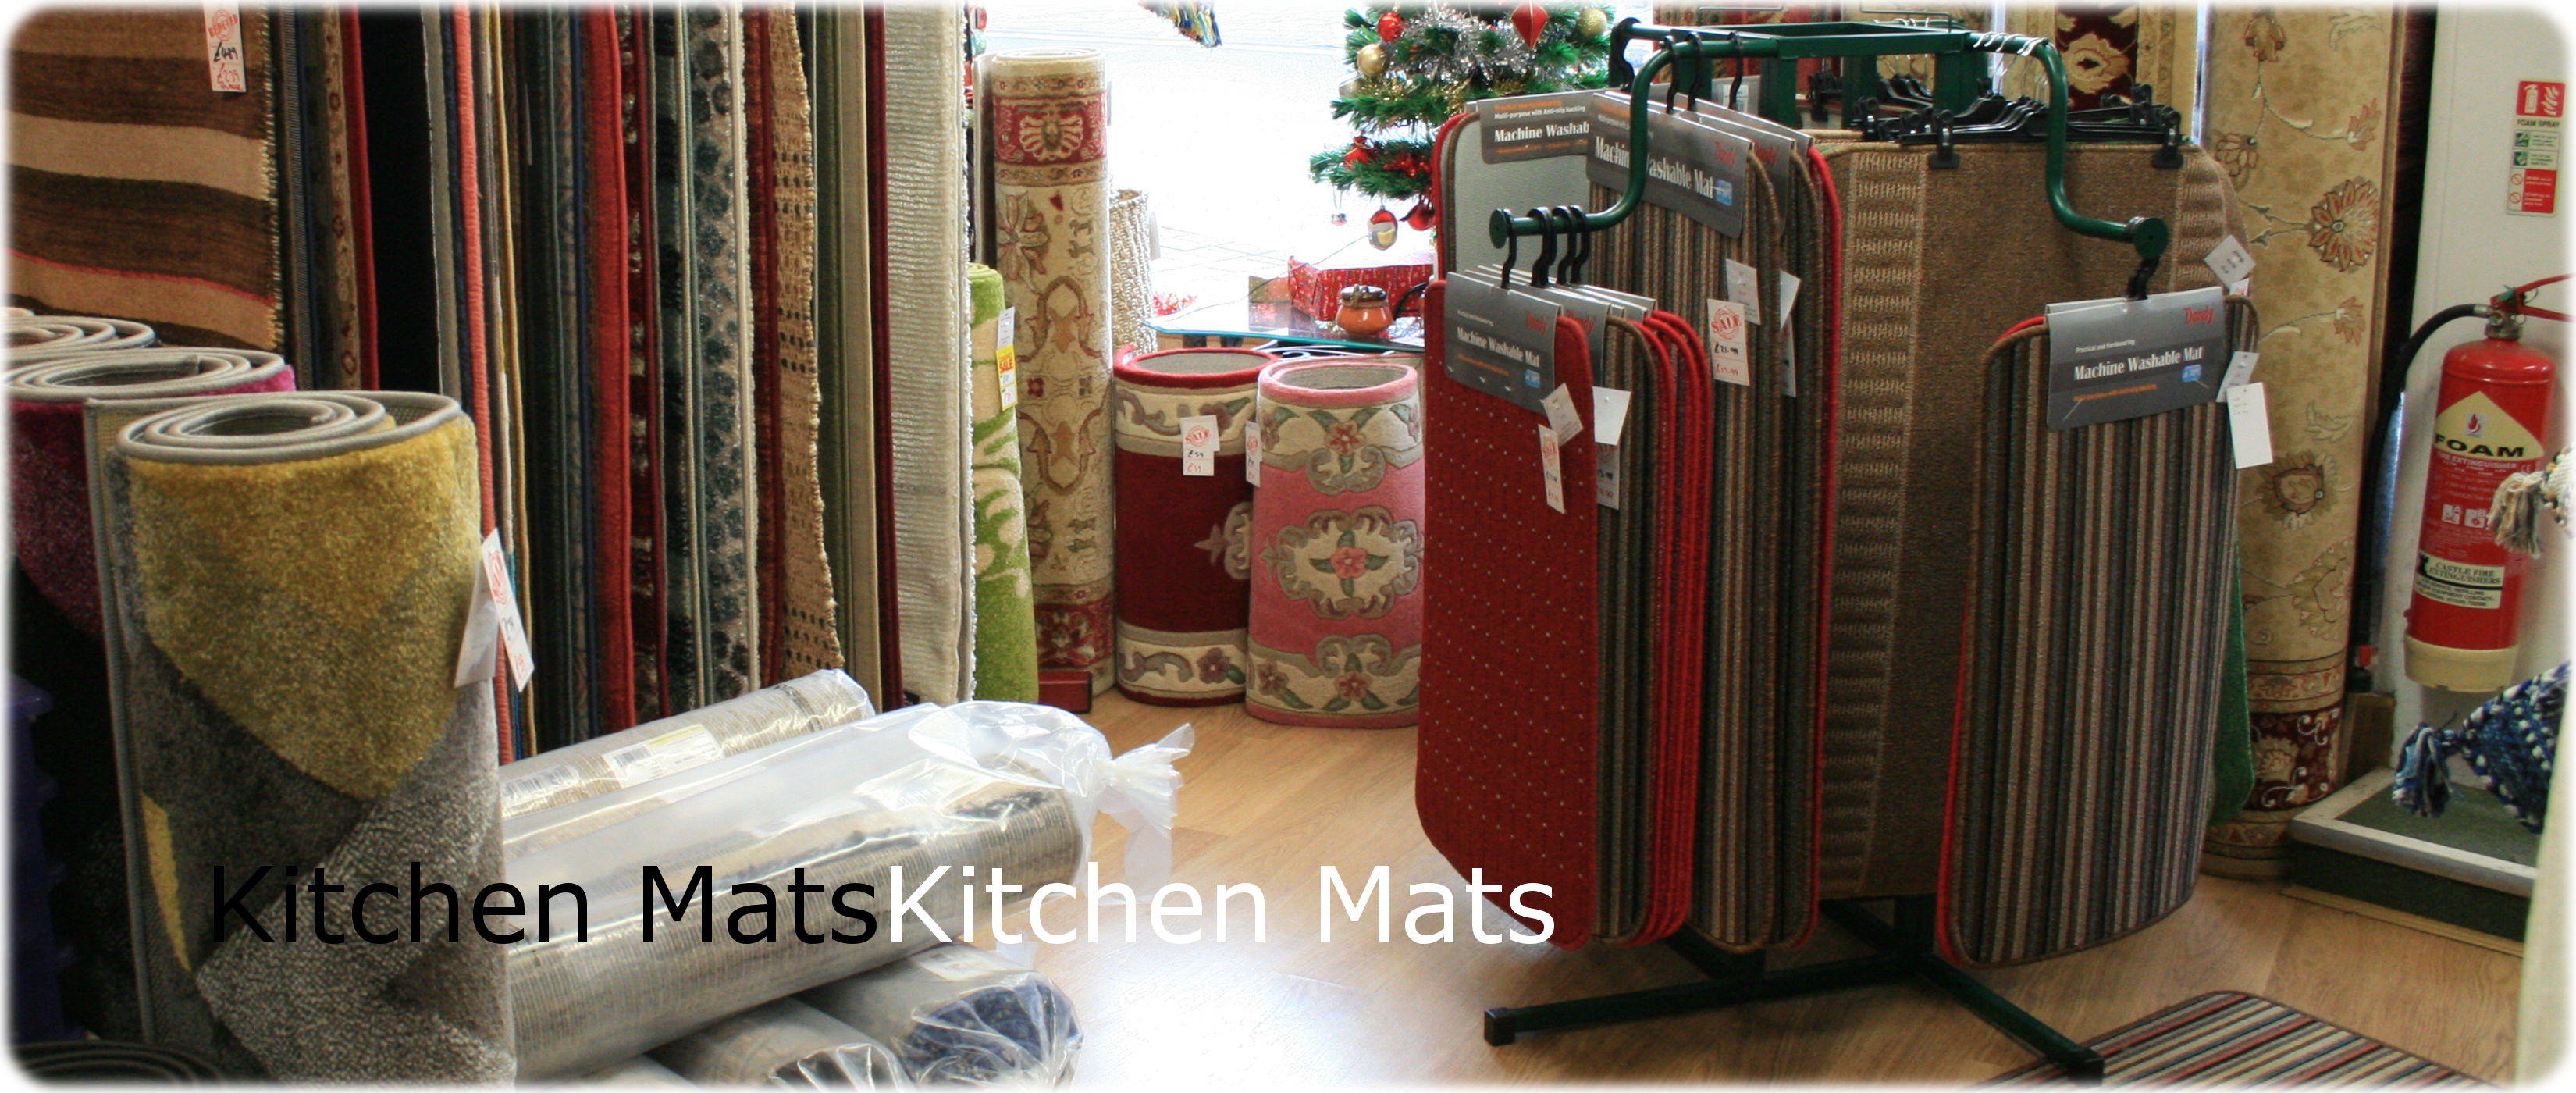 Kitchen mats and rugs logo